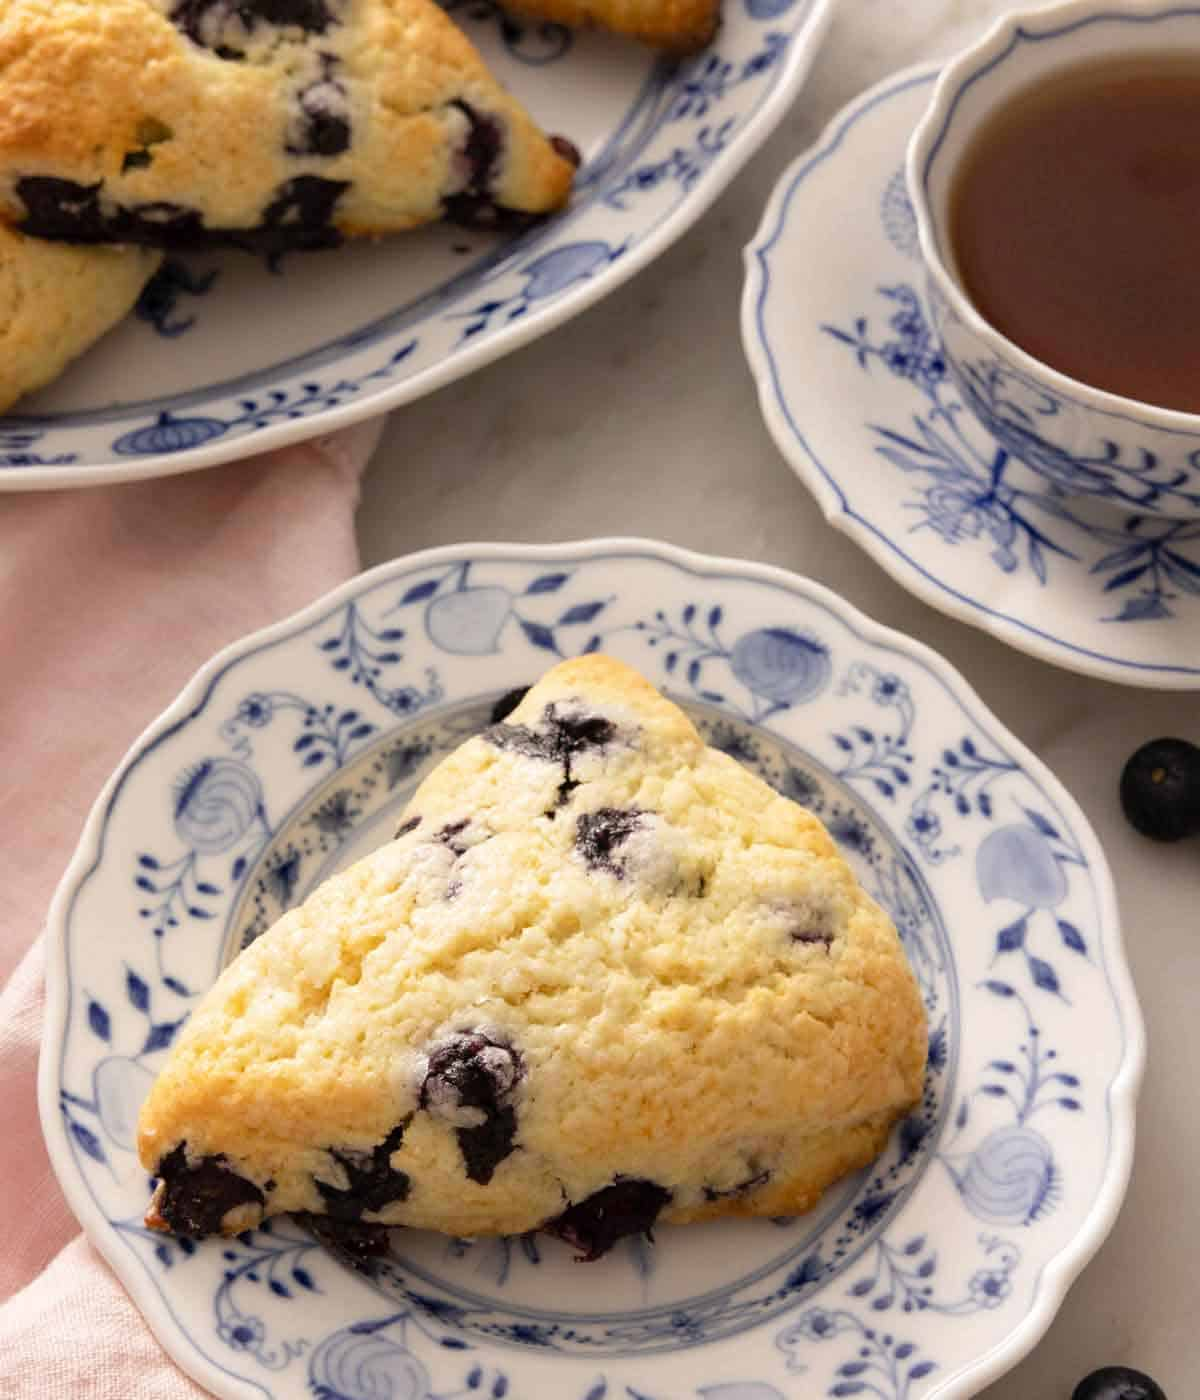 A plate with a blueberry scone in front of a mug of tea.